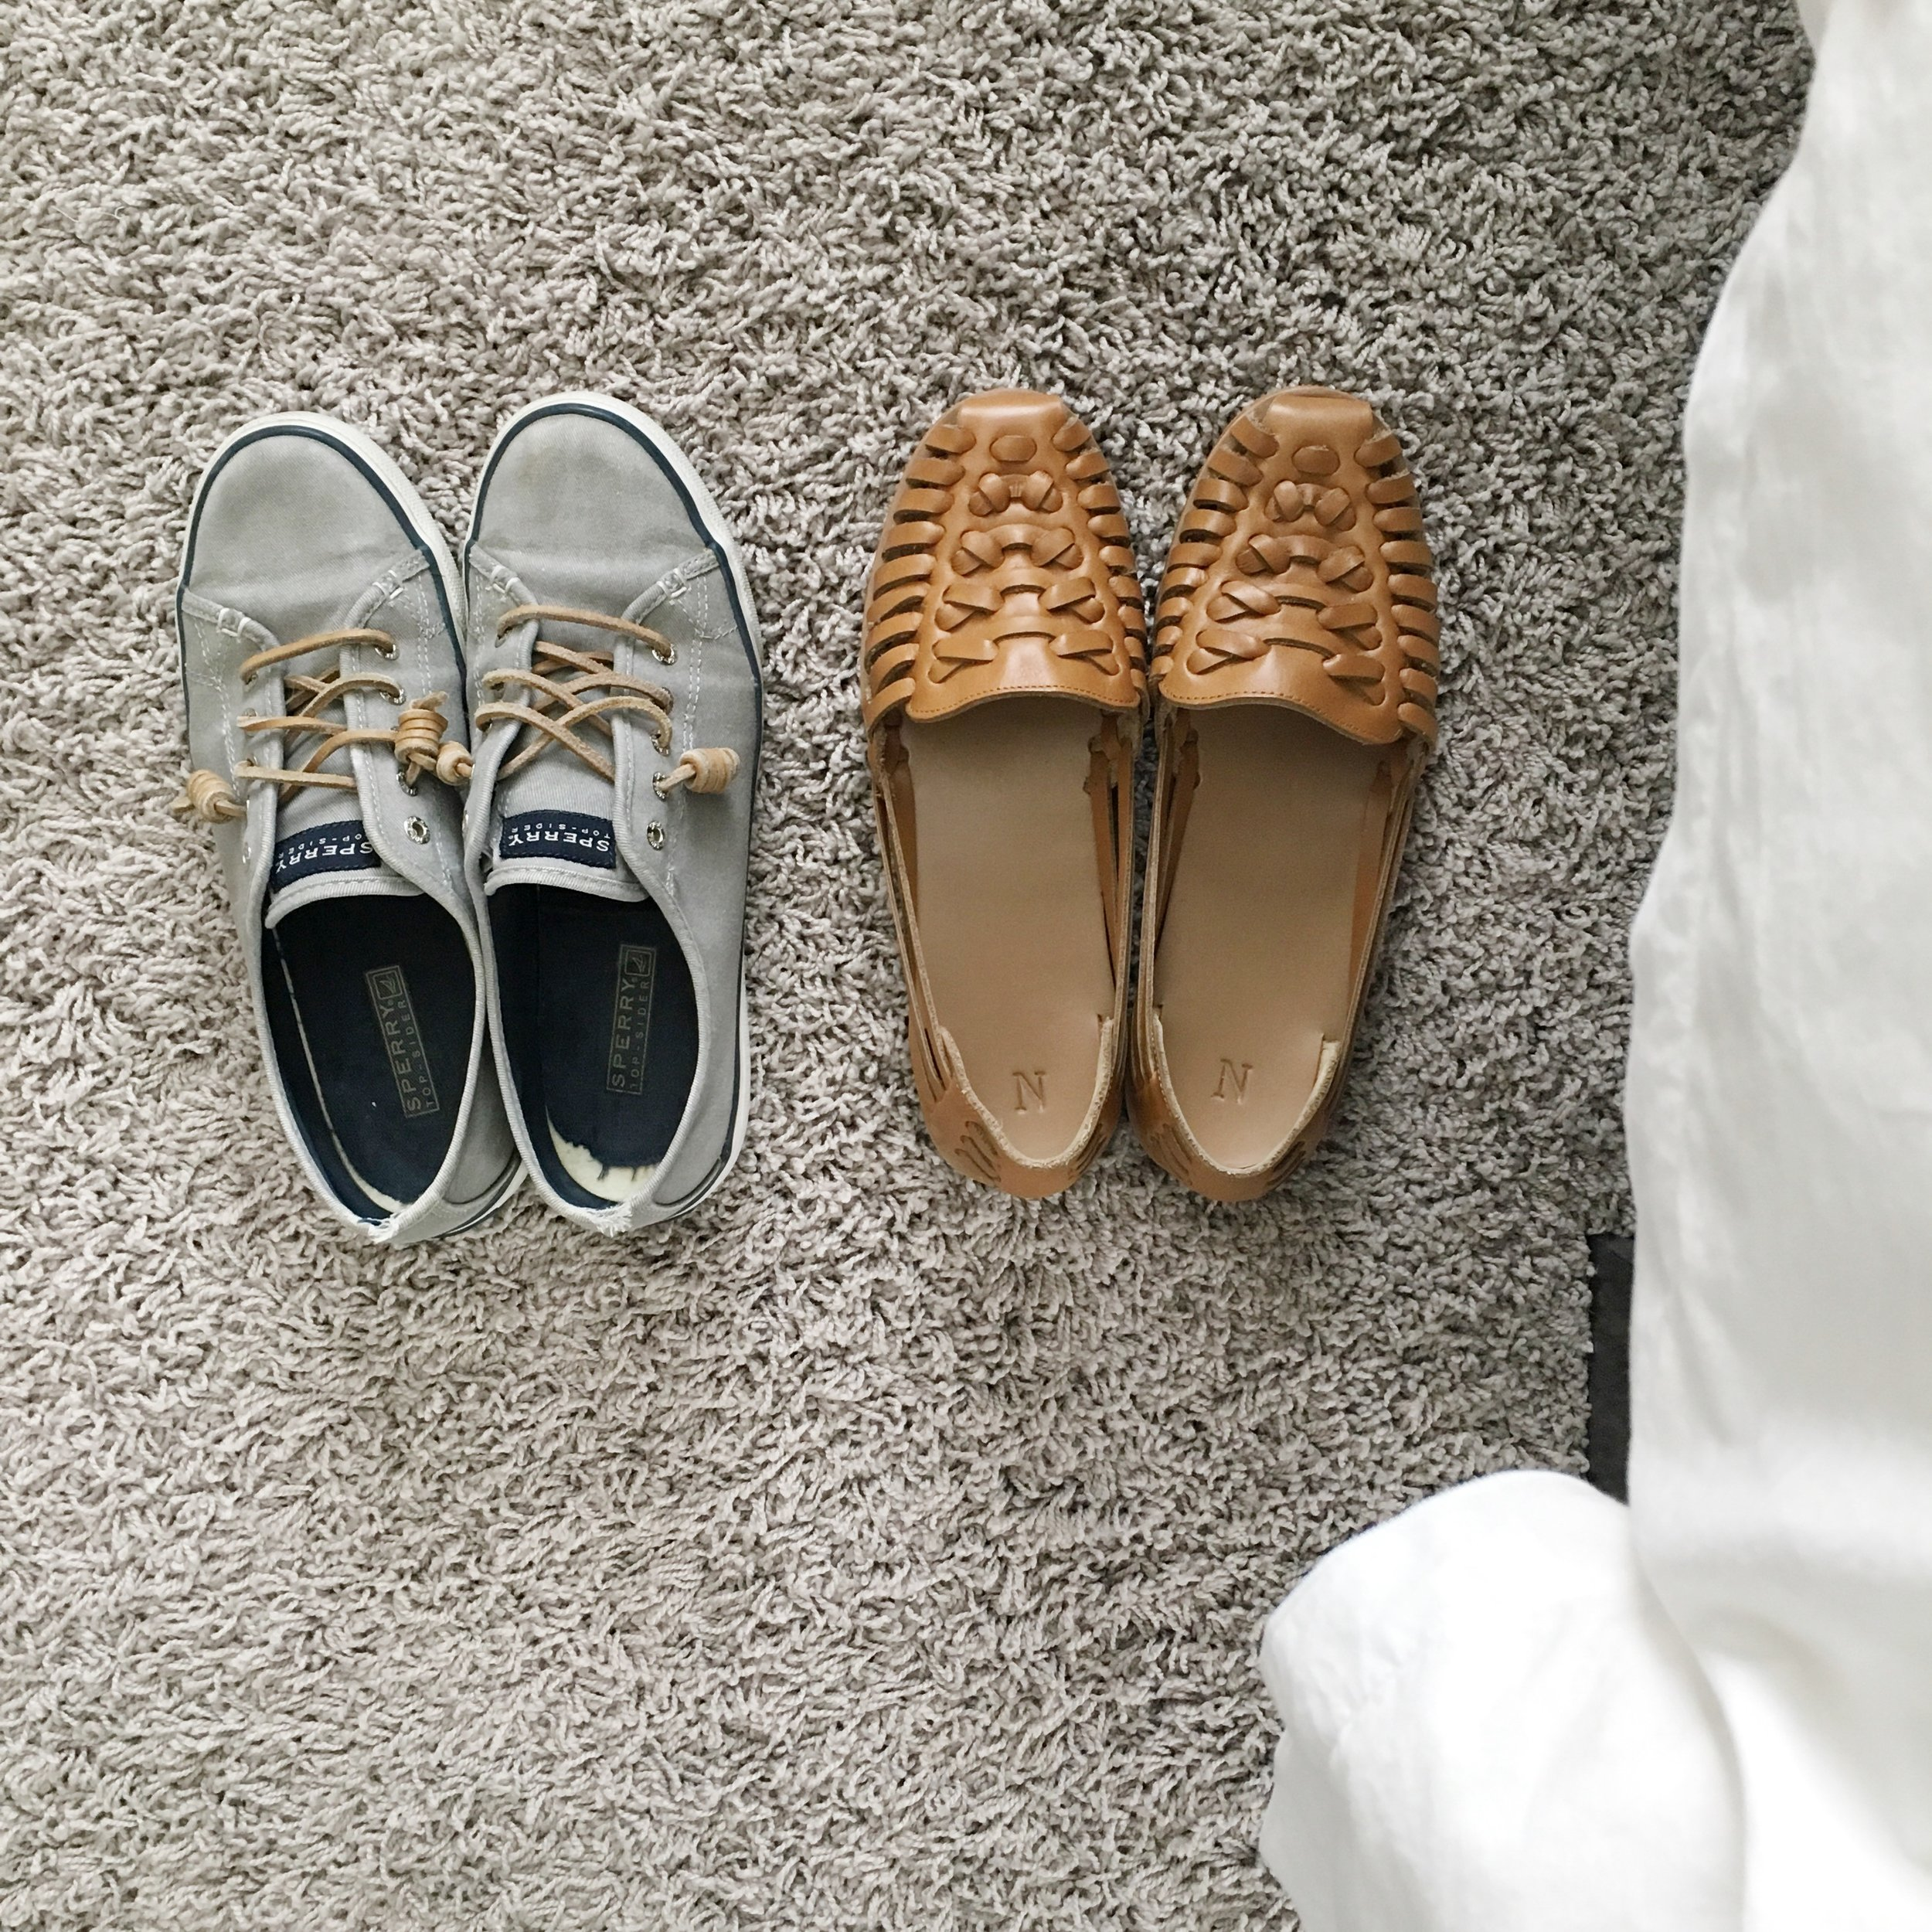 Simplify with 2 shoes